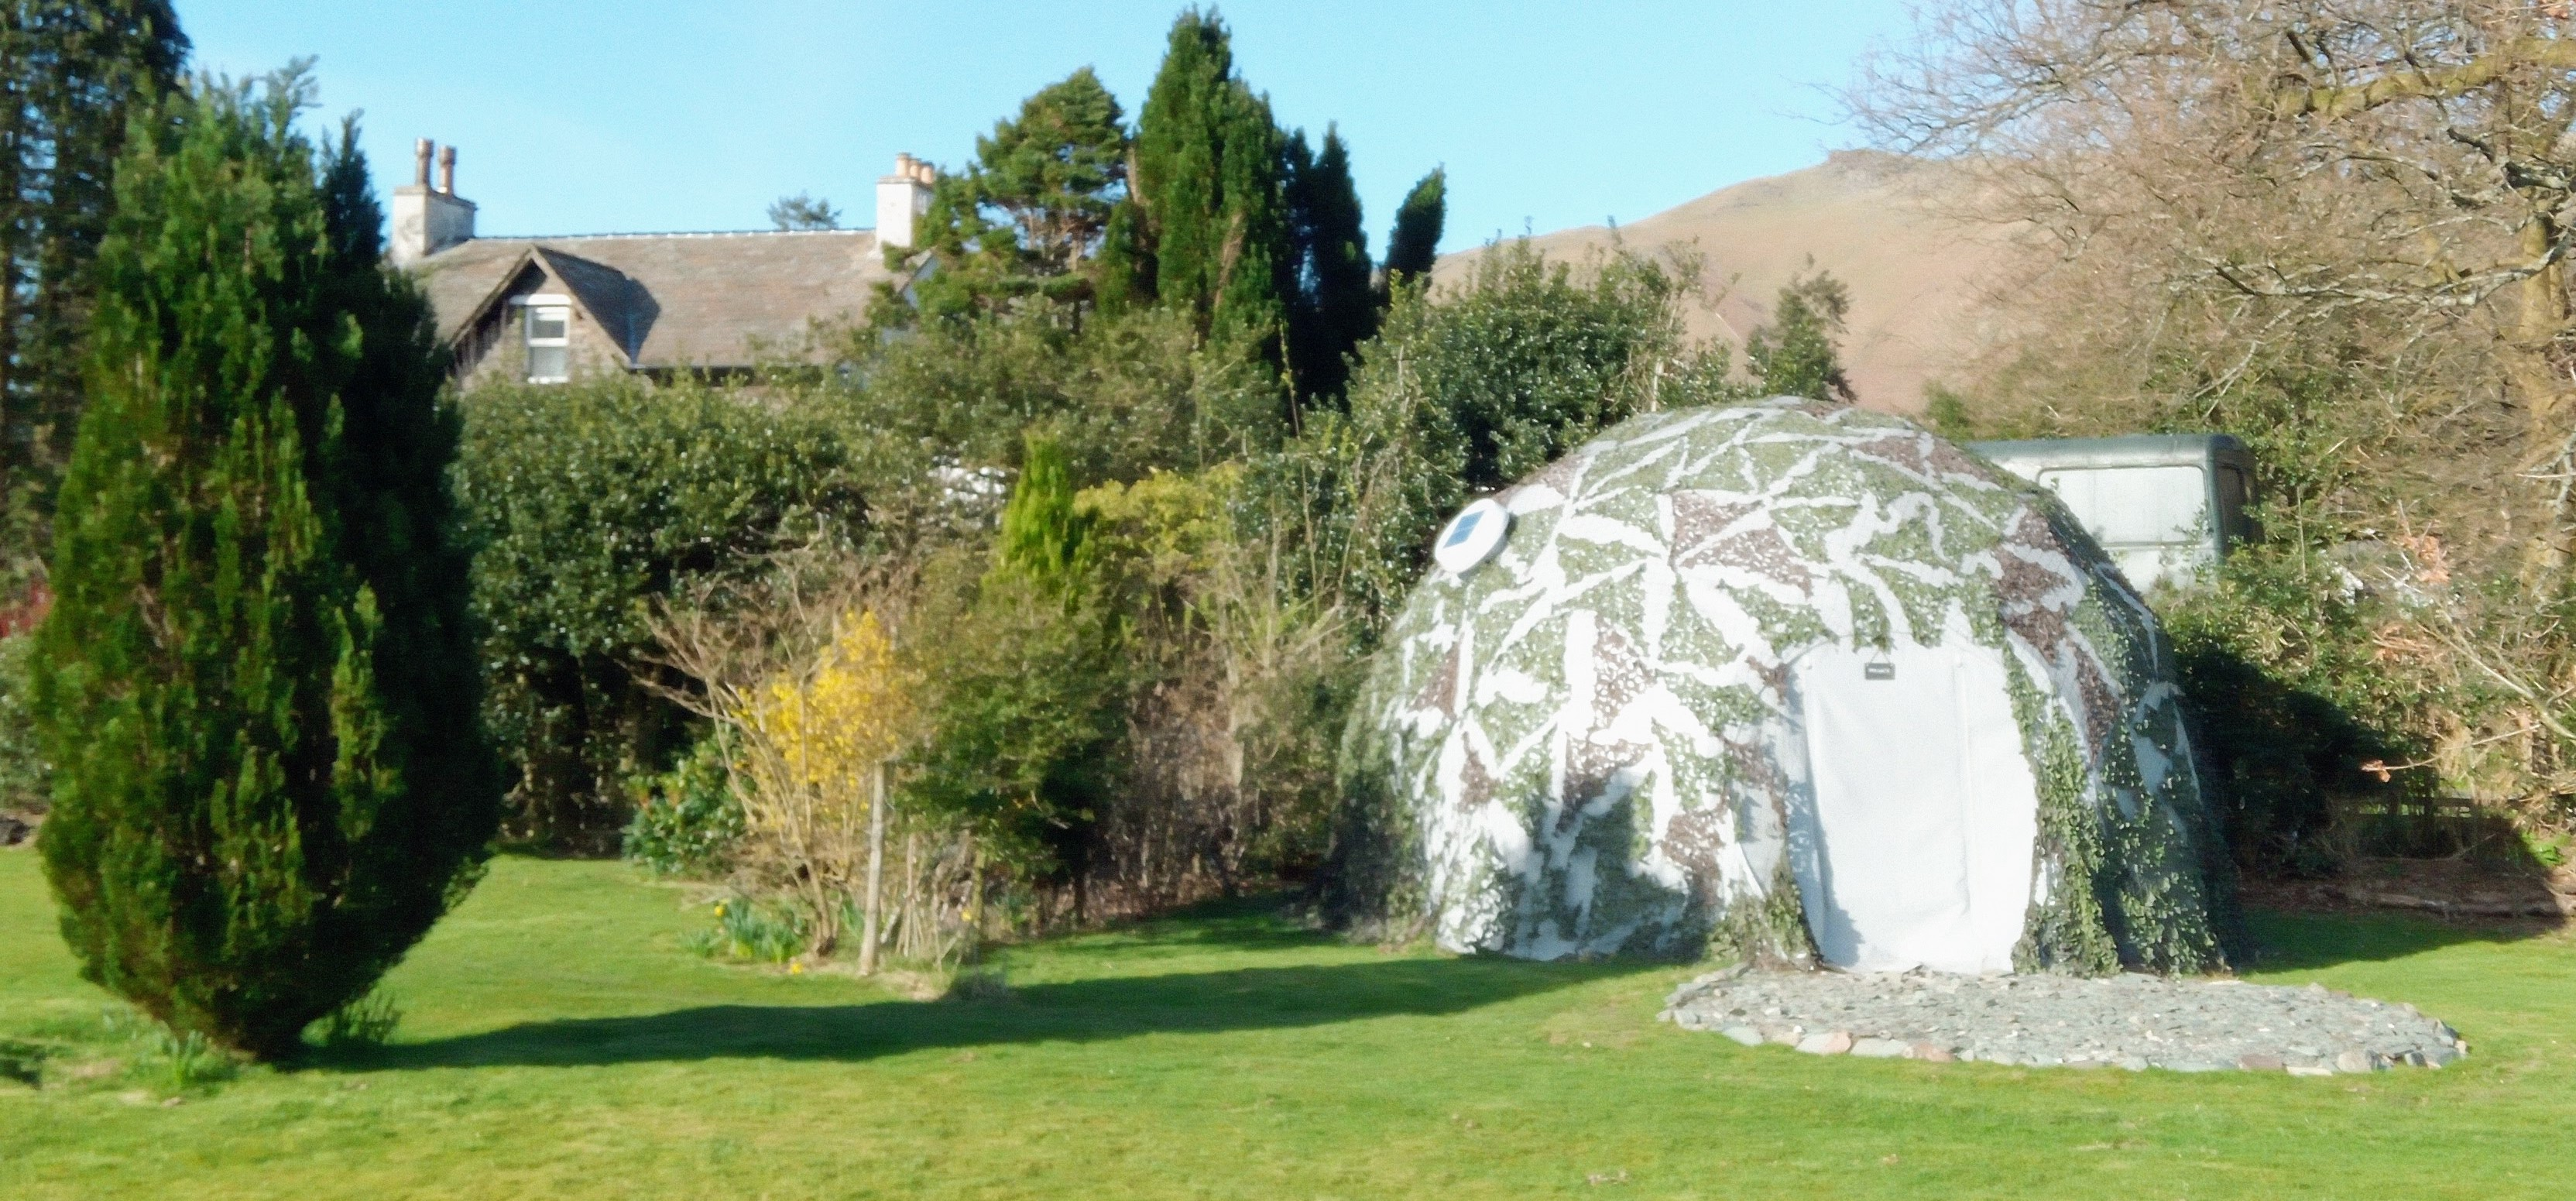 The Glamping Dome